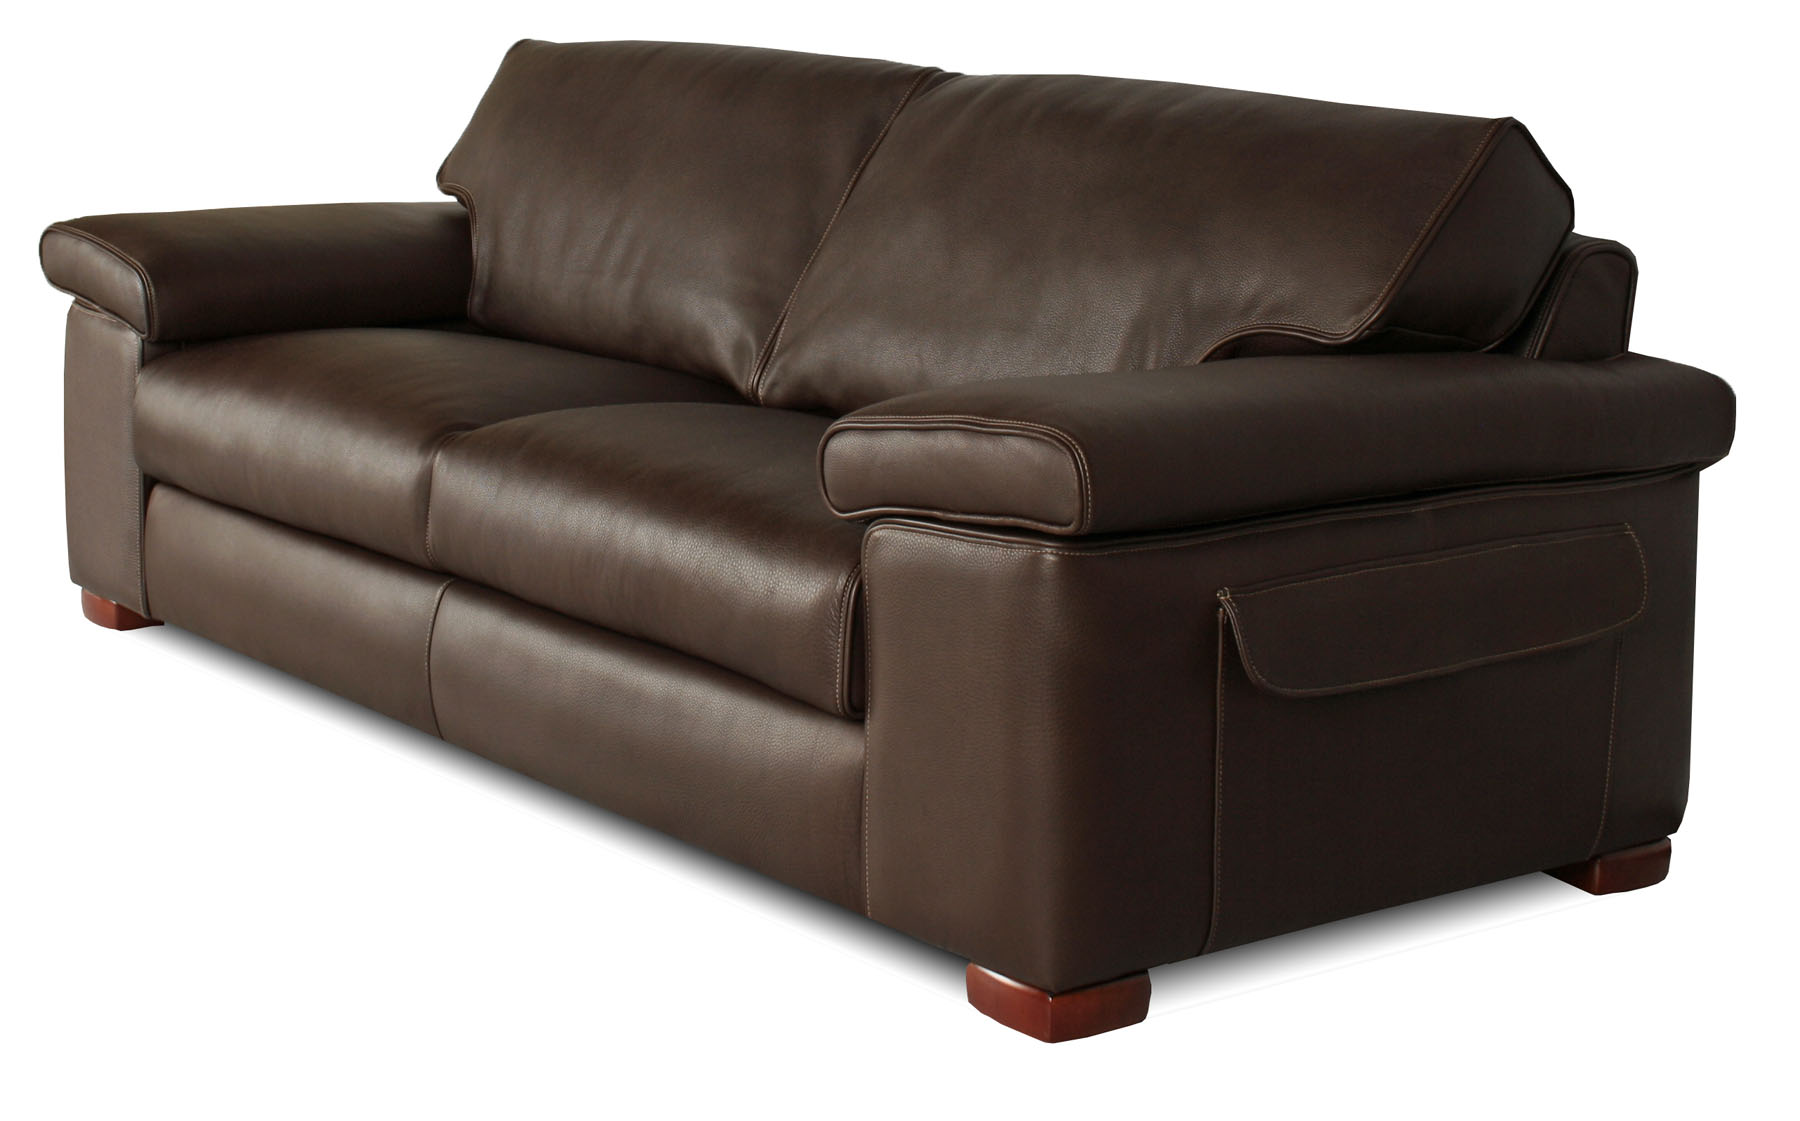 custom leather sofas sofa recliner online couture